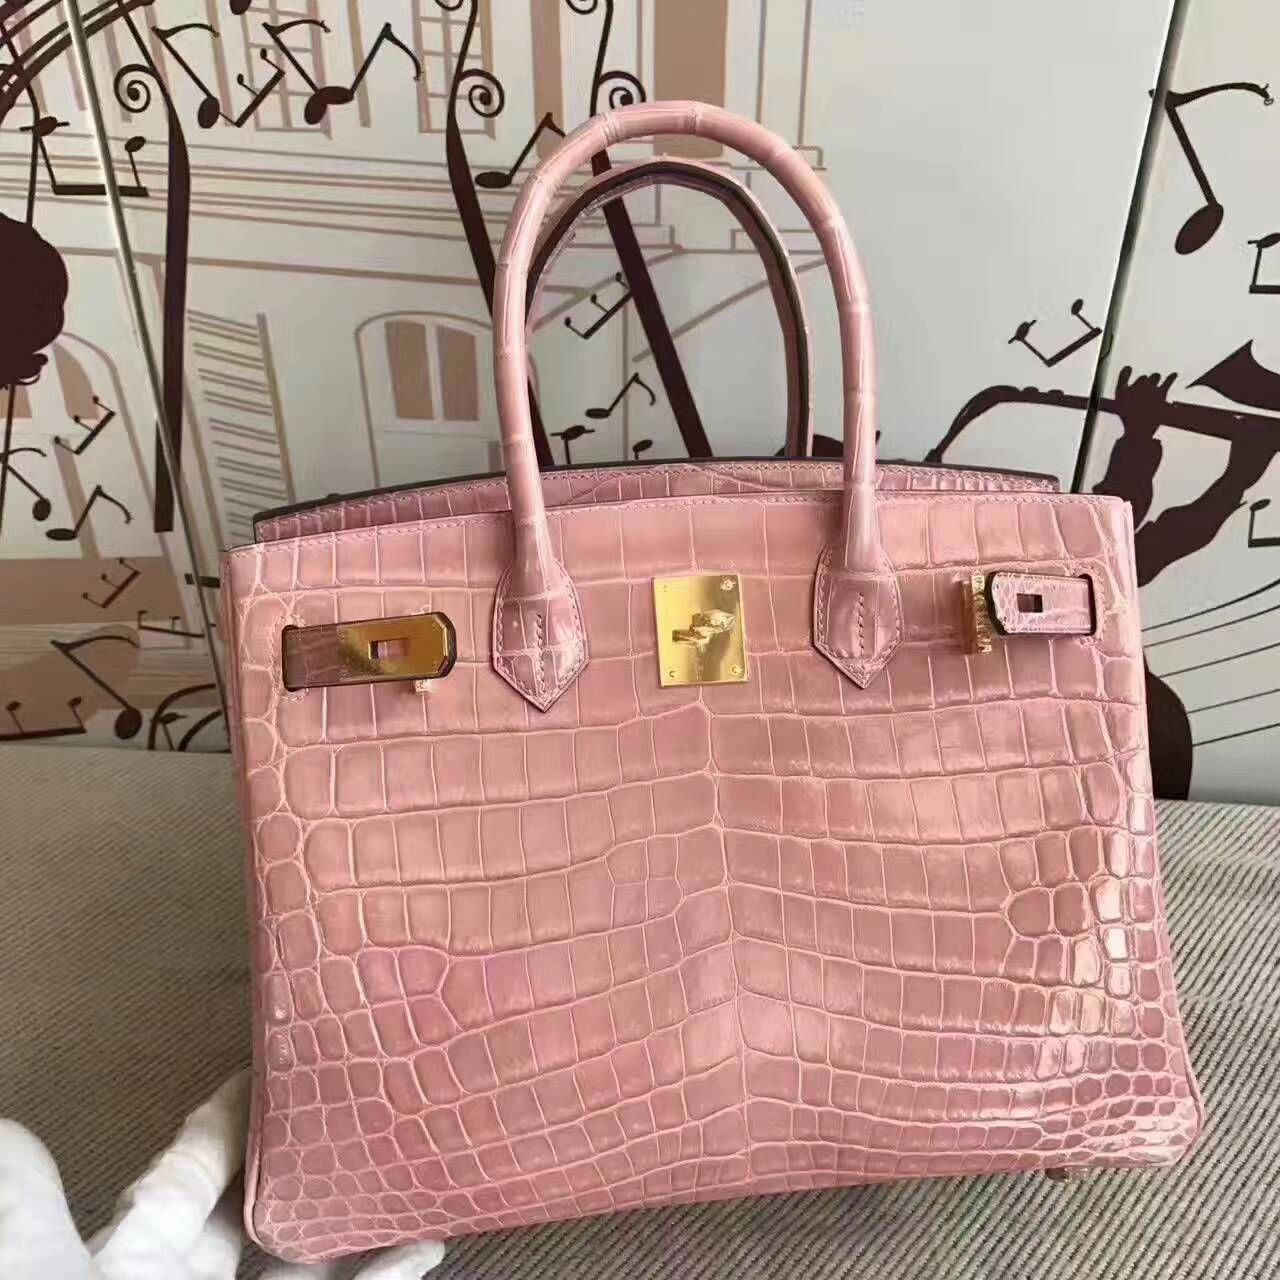 a0524497b1 New Pretty Hermes Birkin Bag 30cm in 5Z Rose Indienne Crocodile Shiny  Leather — Hermes Crocodile Birkin Bag  Hermeshandbags